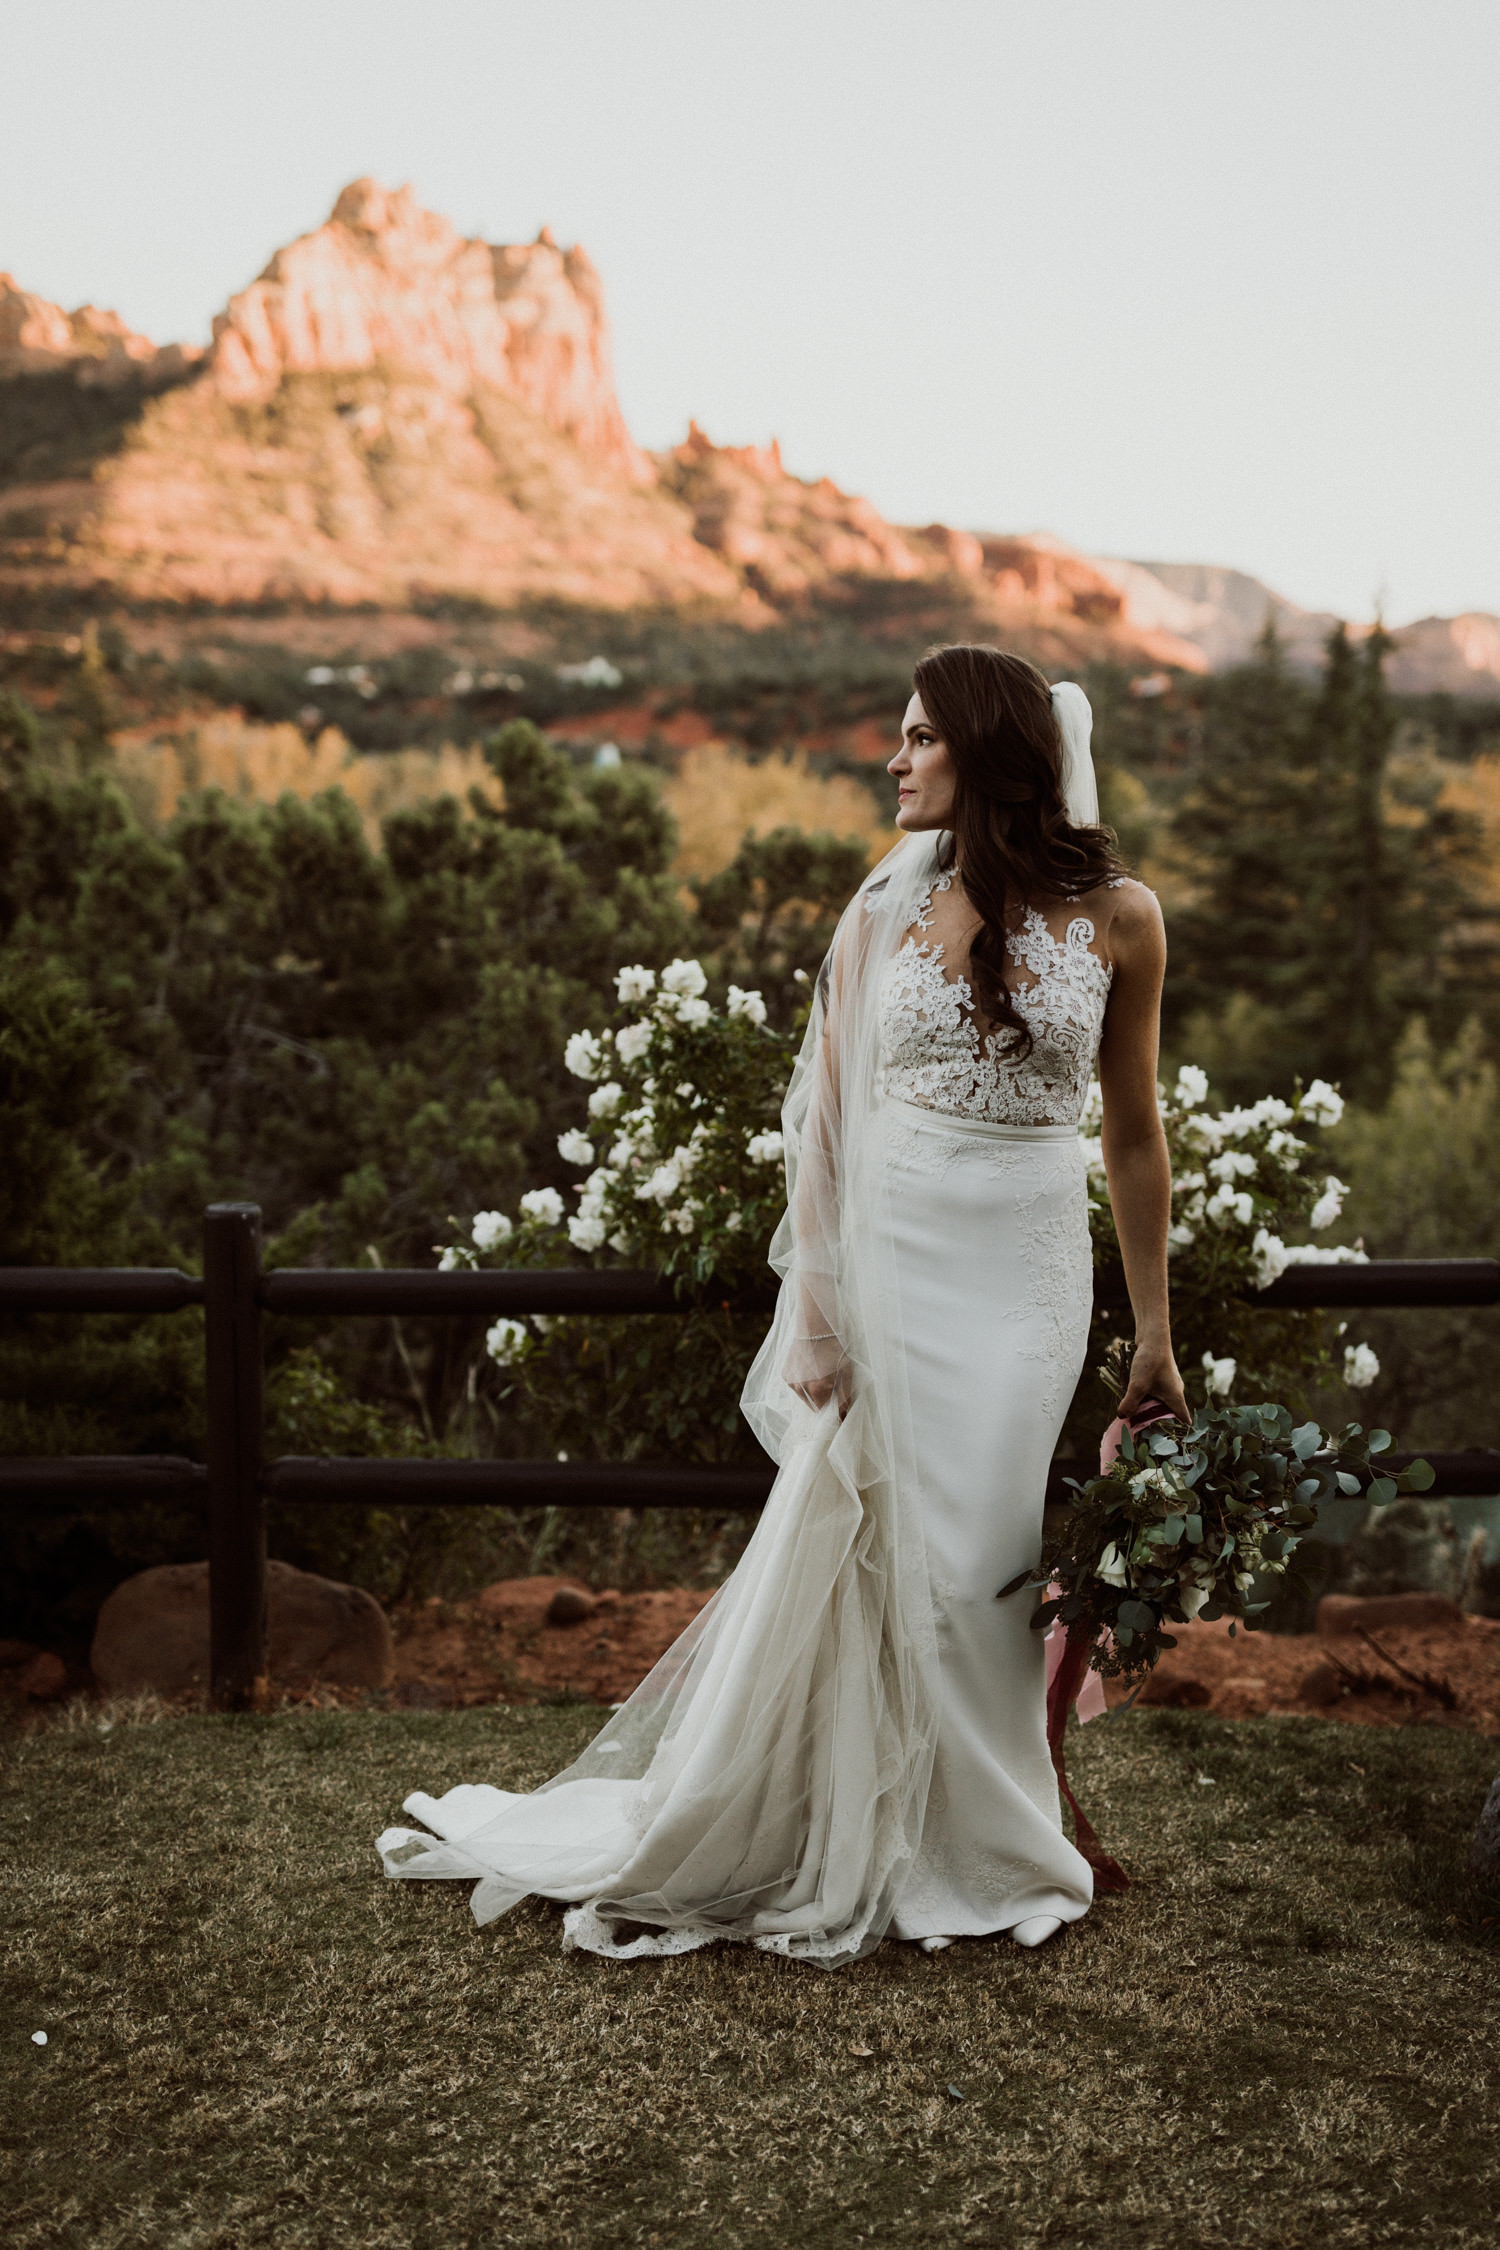 38_intimate-sedona-arizona-wedding-57.jpg